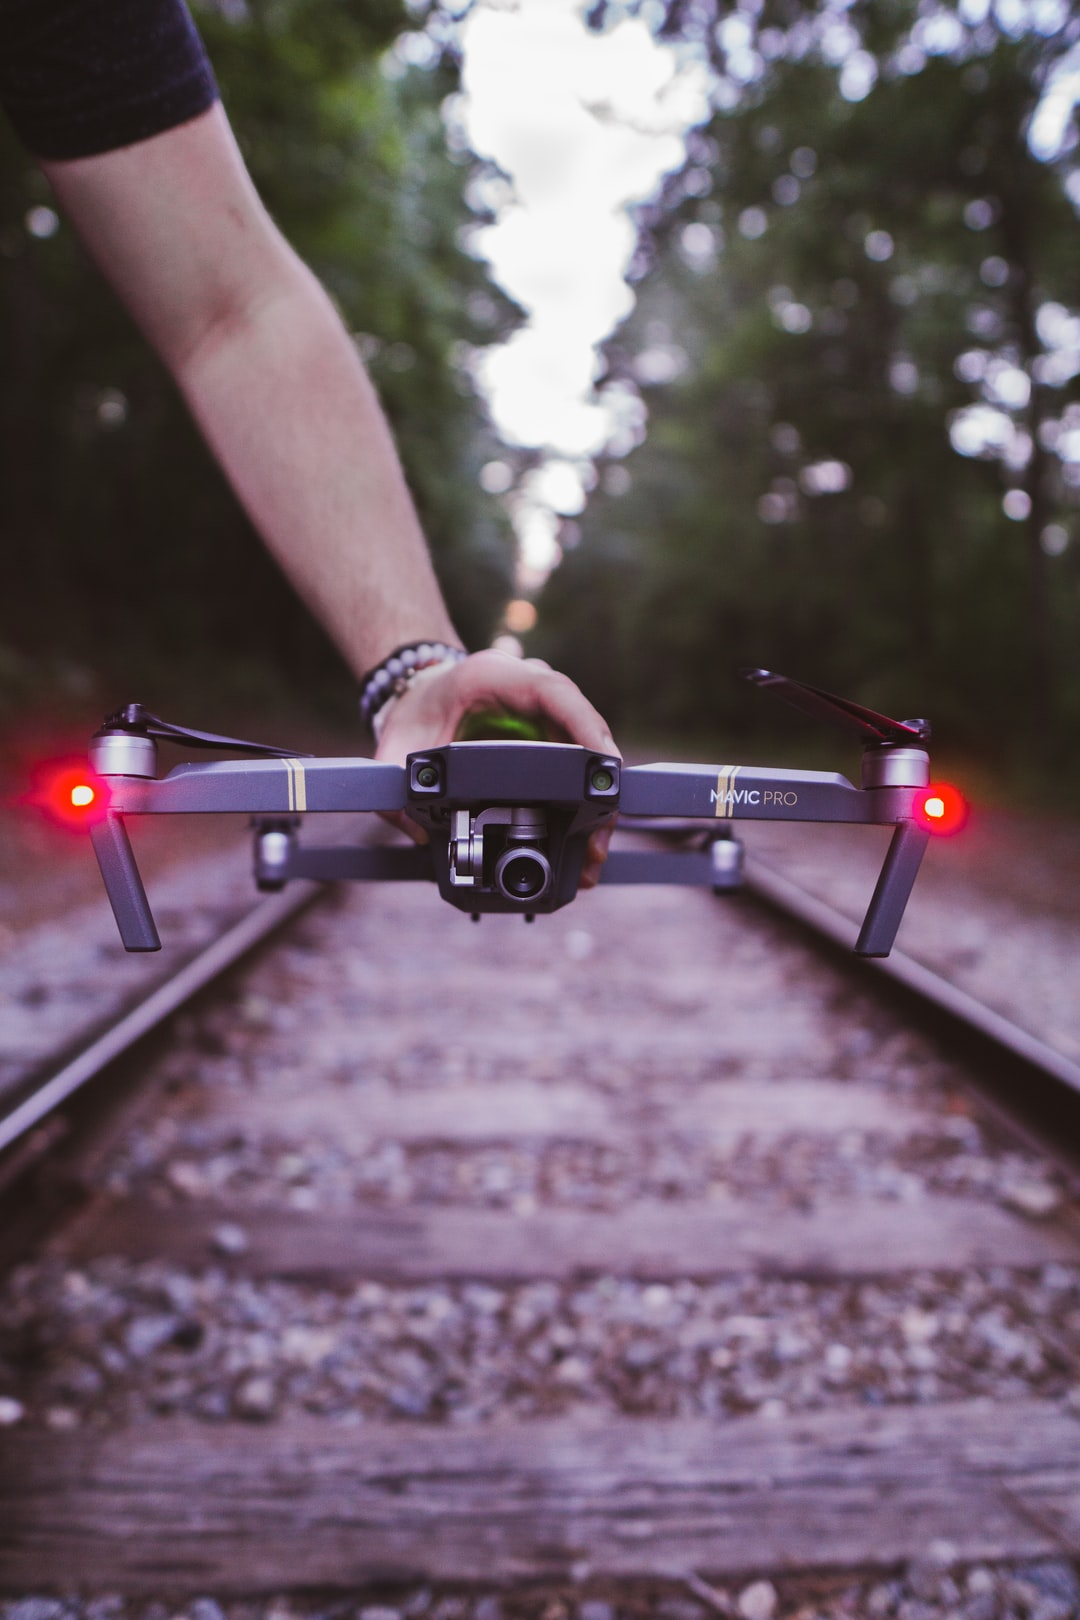 After going almost two weeks without shooting, some friends and I were finally able to go out and shoot. We spent hours flying drones, walking across an abandoned railroad bridge, and lighting sparklers. It was a good time to be had.